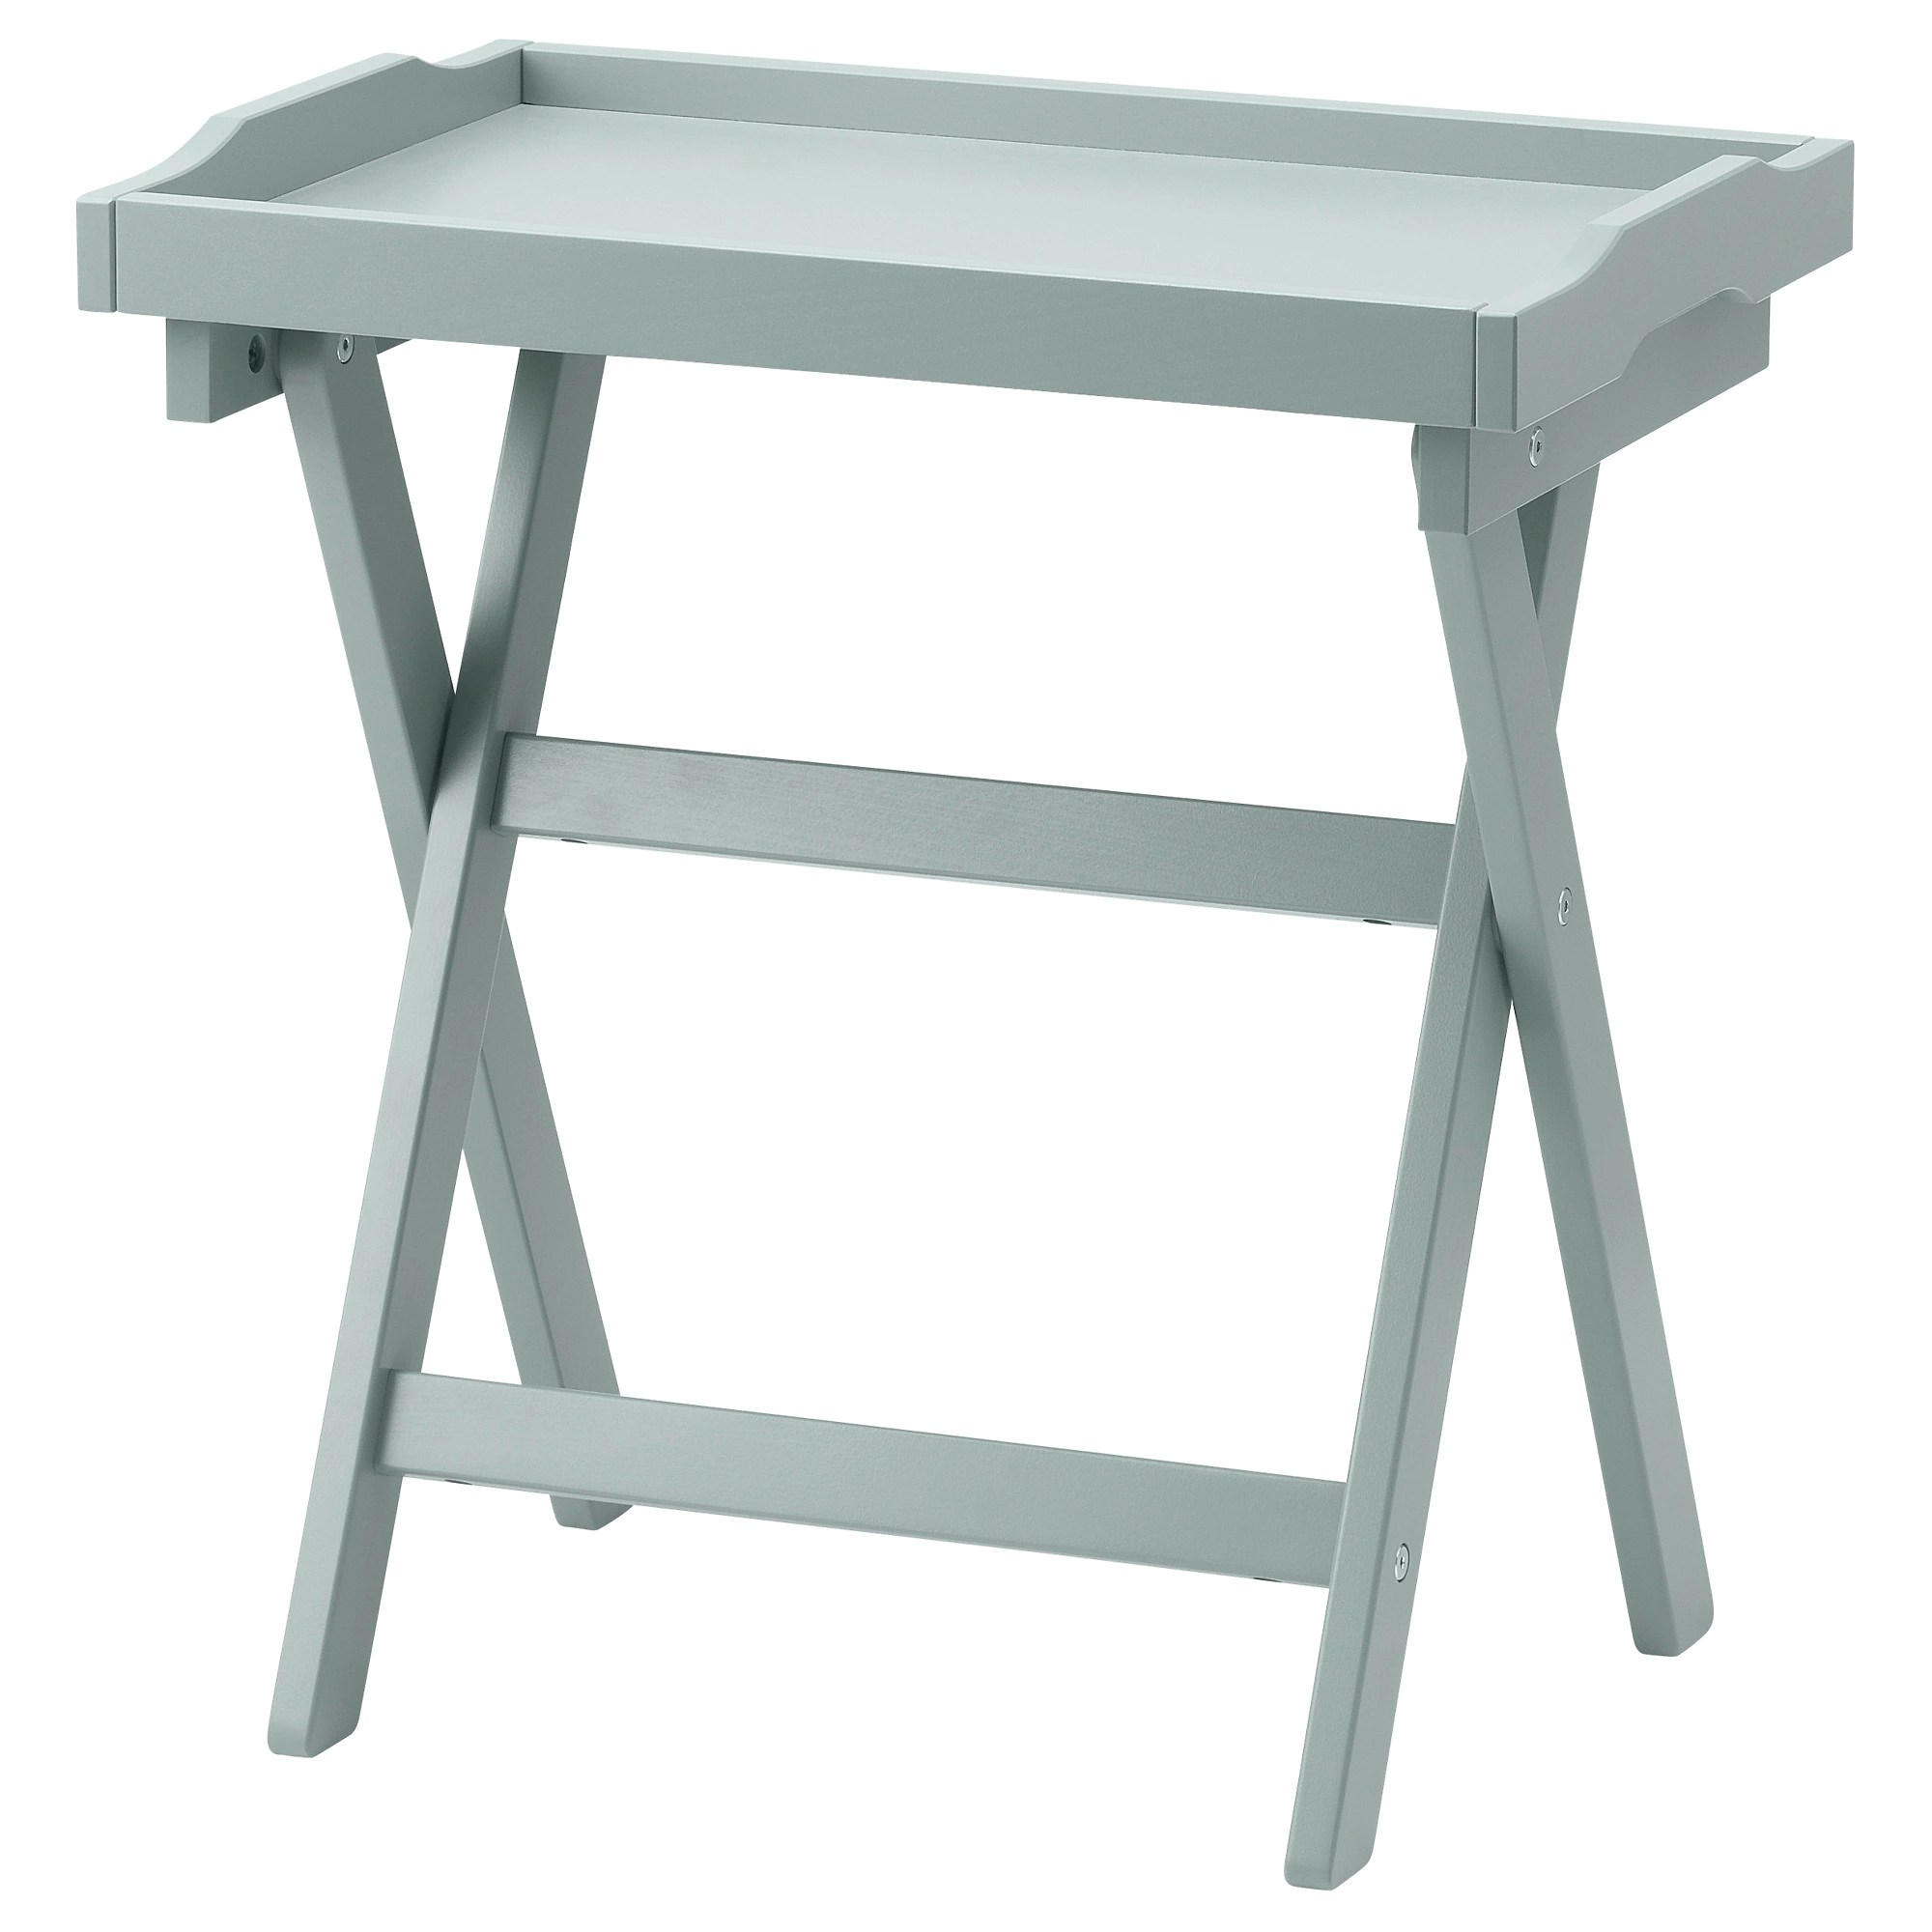 Petite Table Ikea Maryd Tray Table Gray